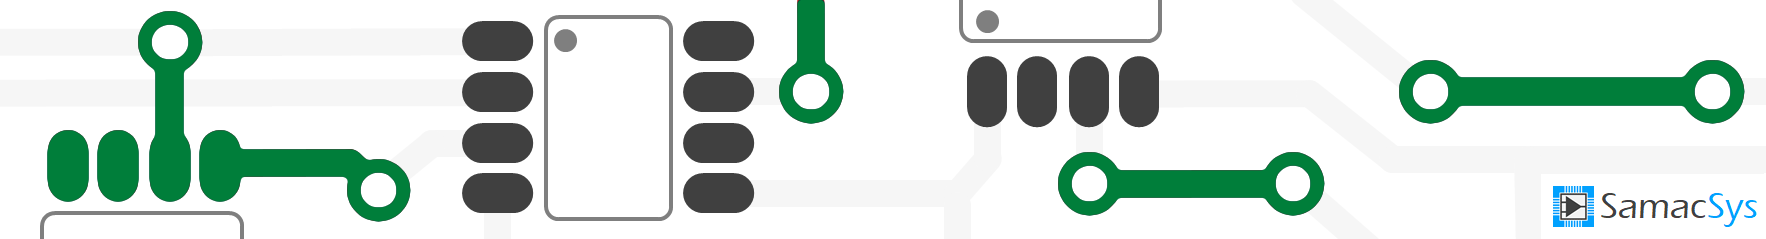 component_search_engine_banner